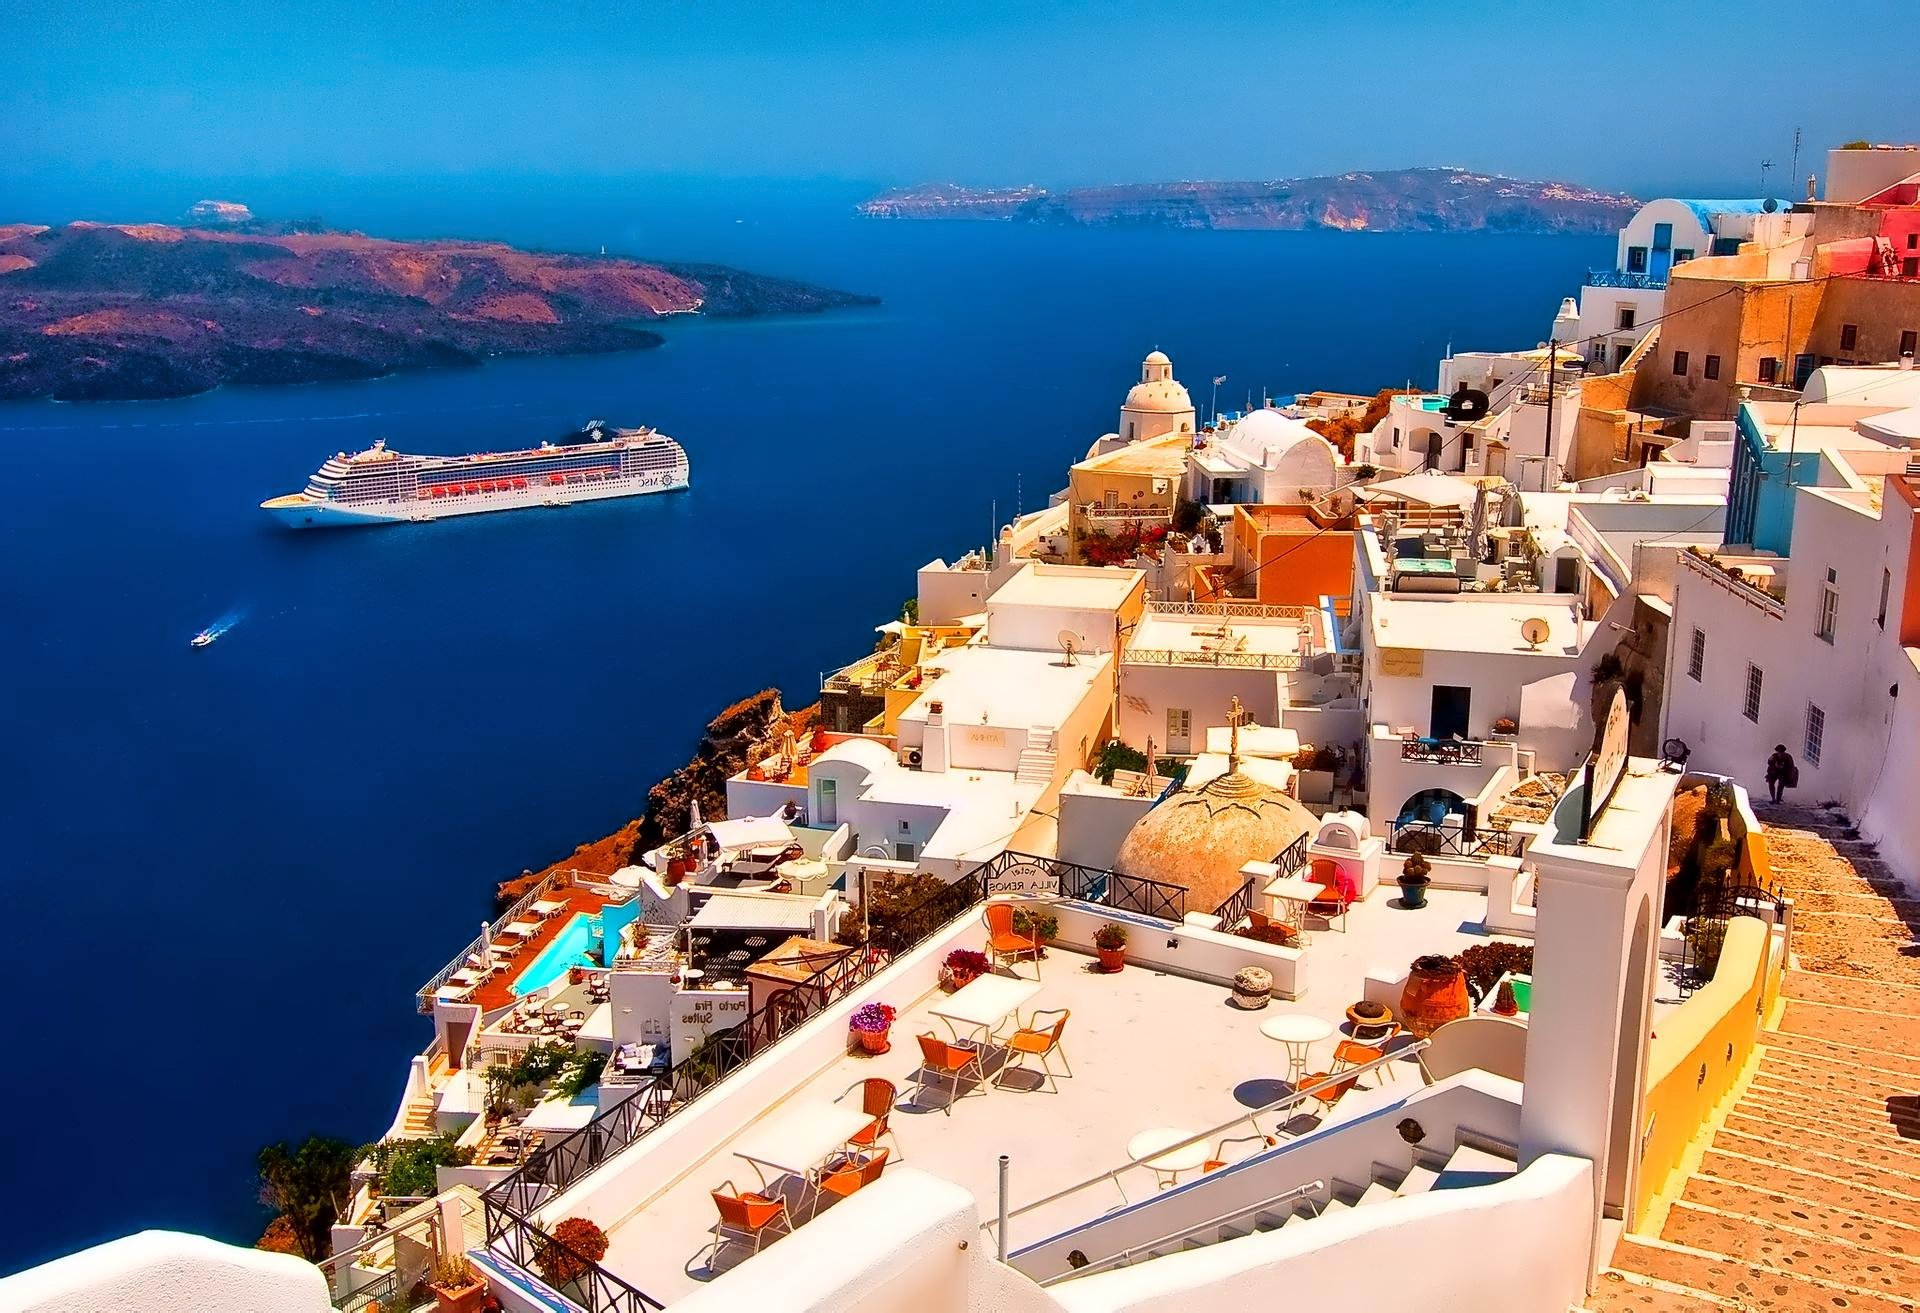 Santorini Greece Wallpaper Gallery Yopriceville   High Quality 1920x1313